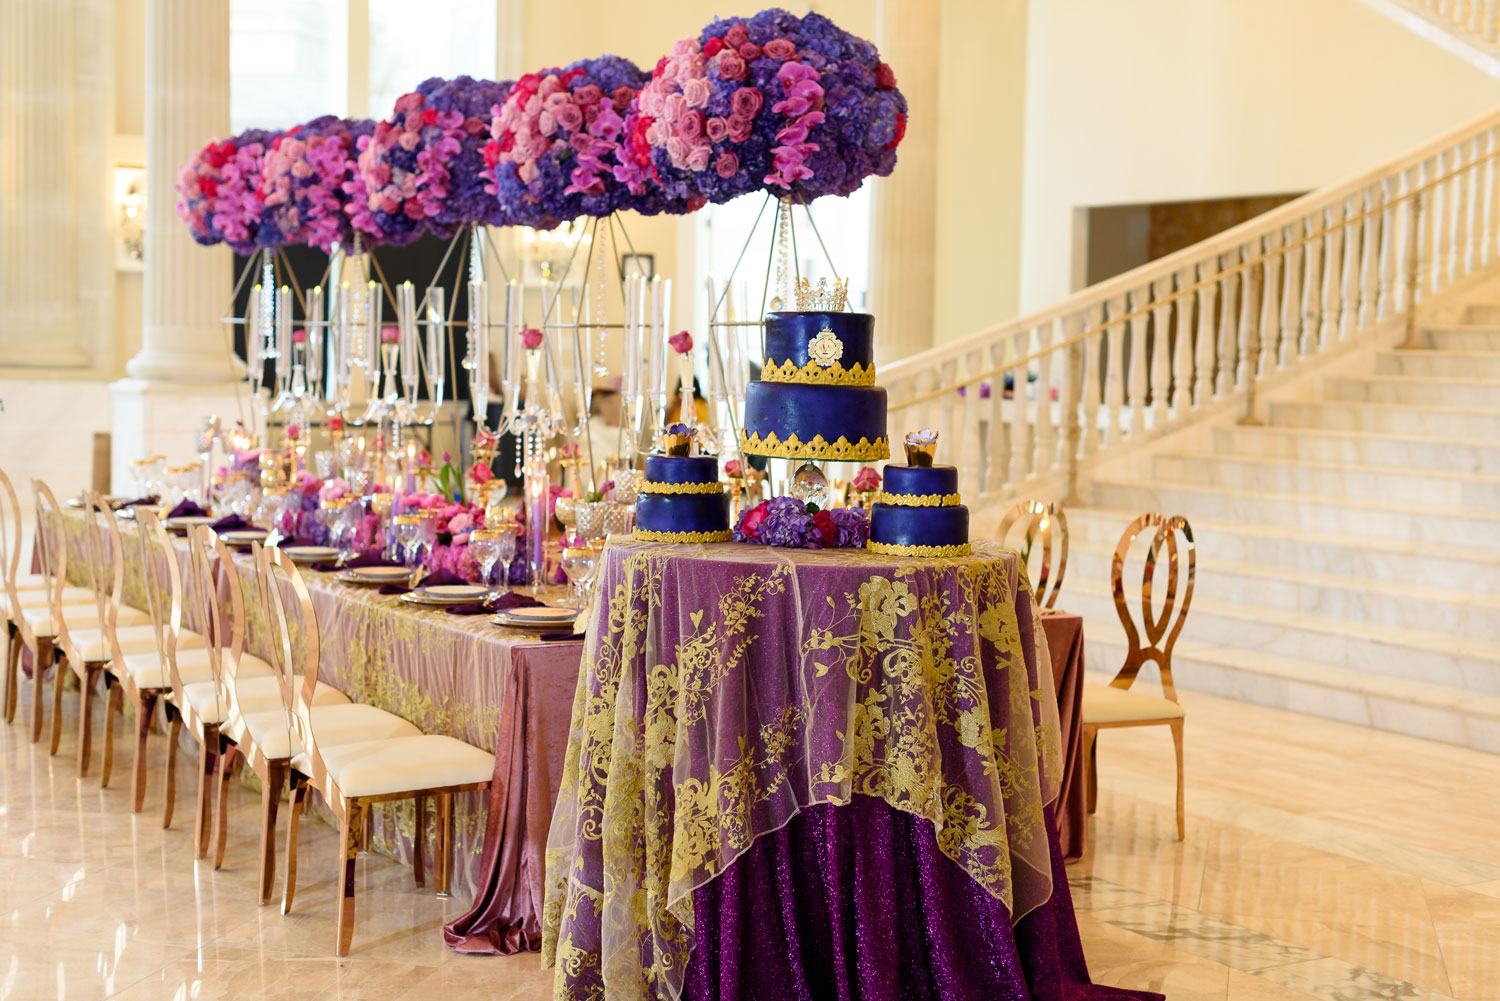 Styled shoot bold purple color palette Lily V Events cake table